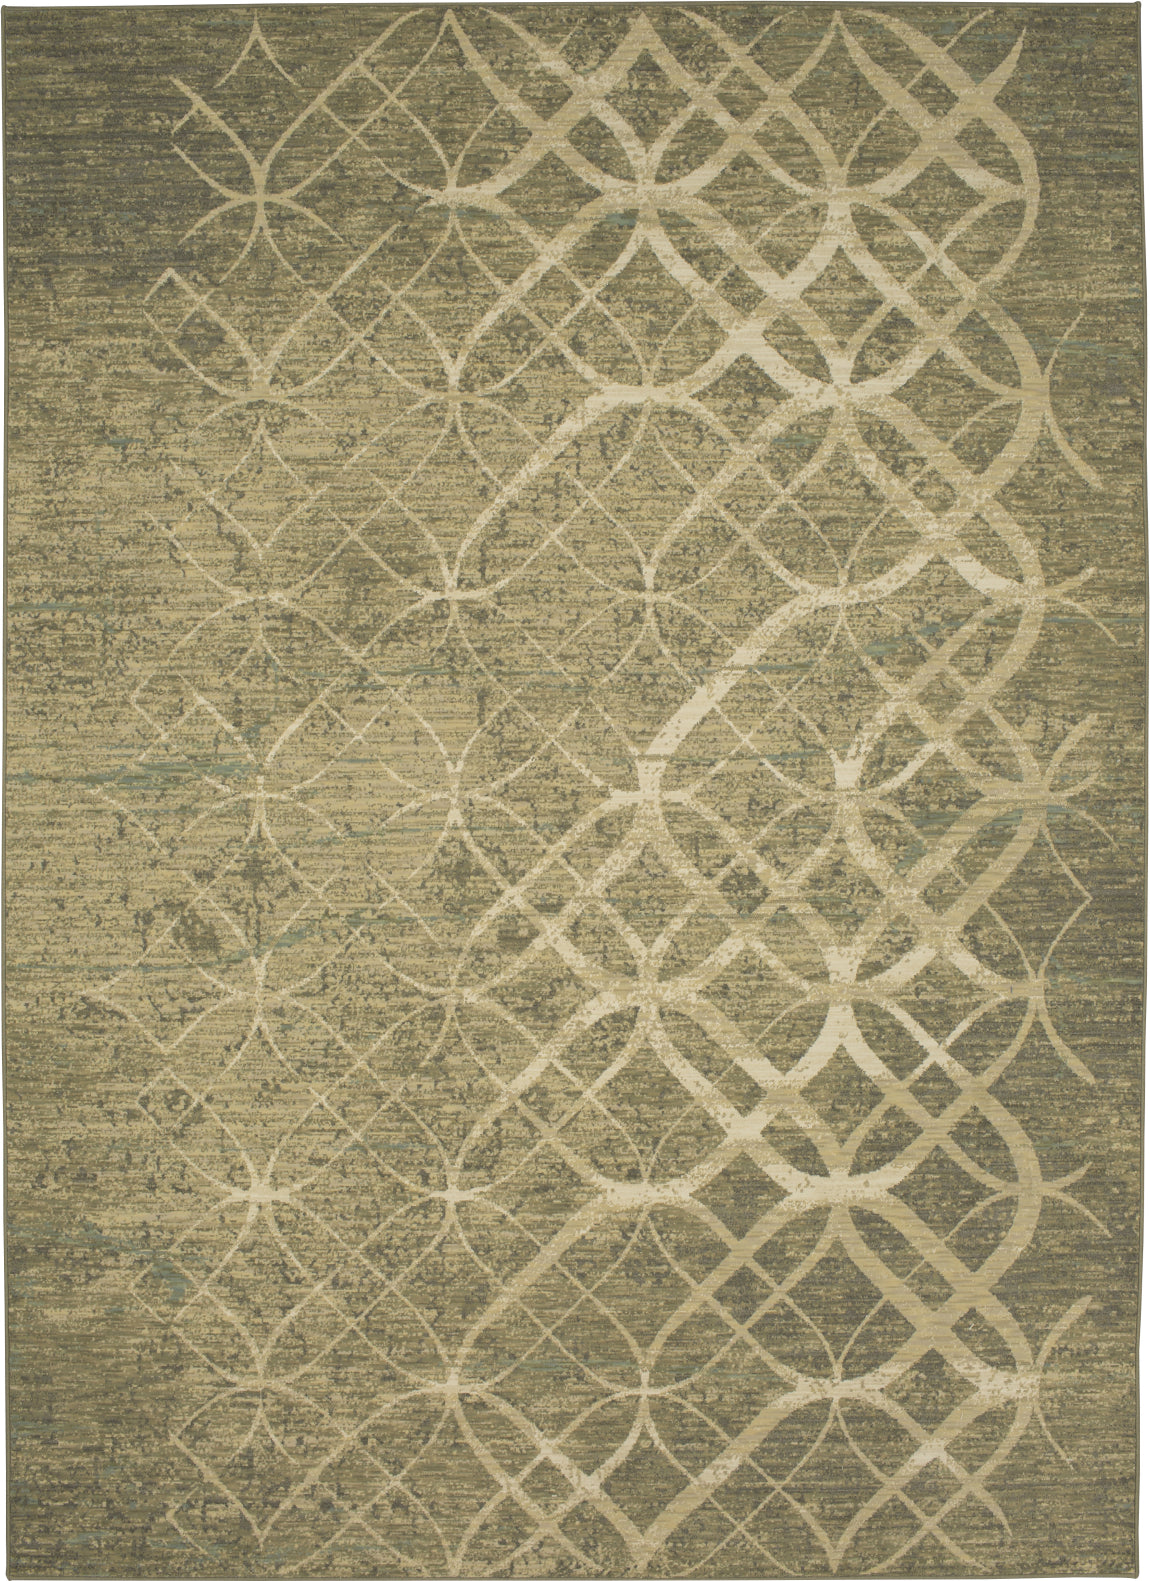 Karastan kismet vesper area rug by virginia langley incredible rugs and decor